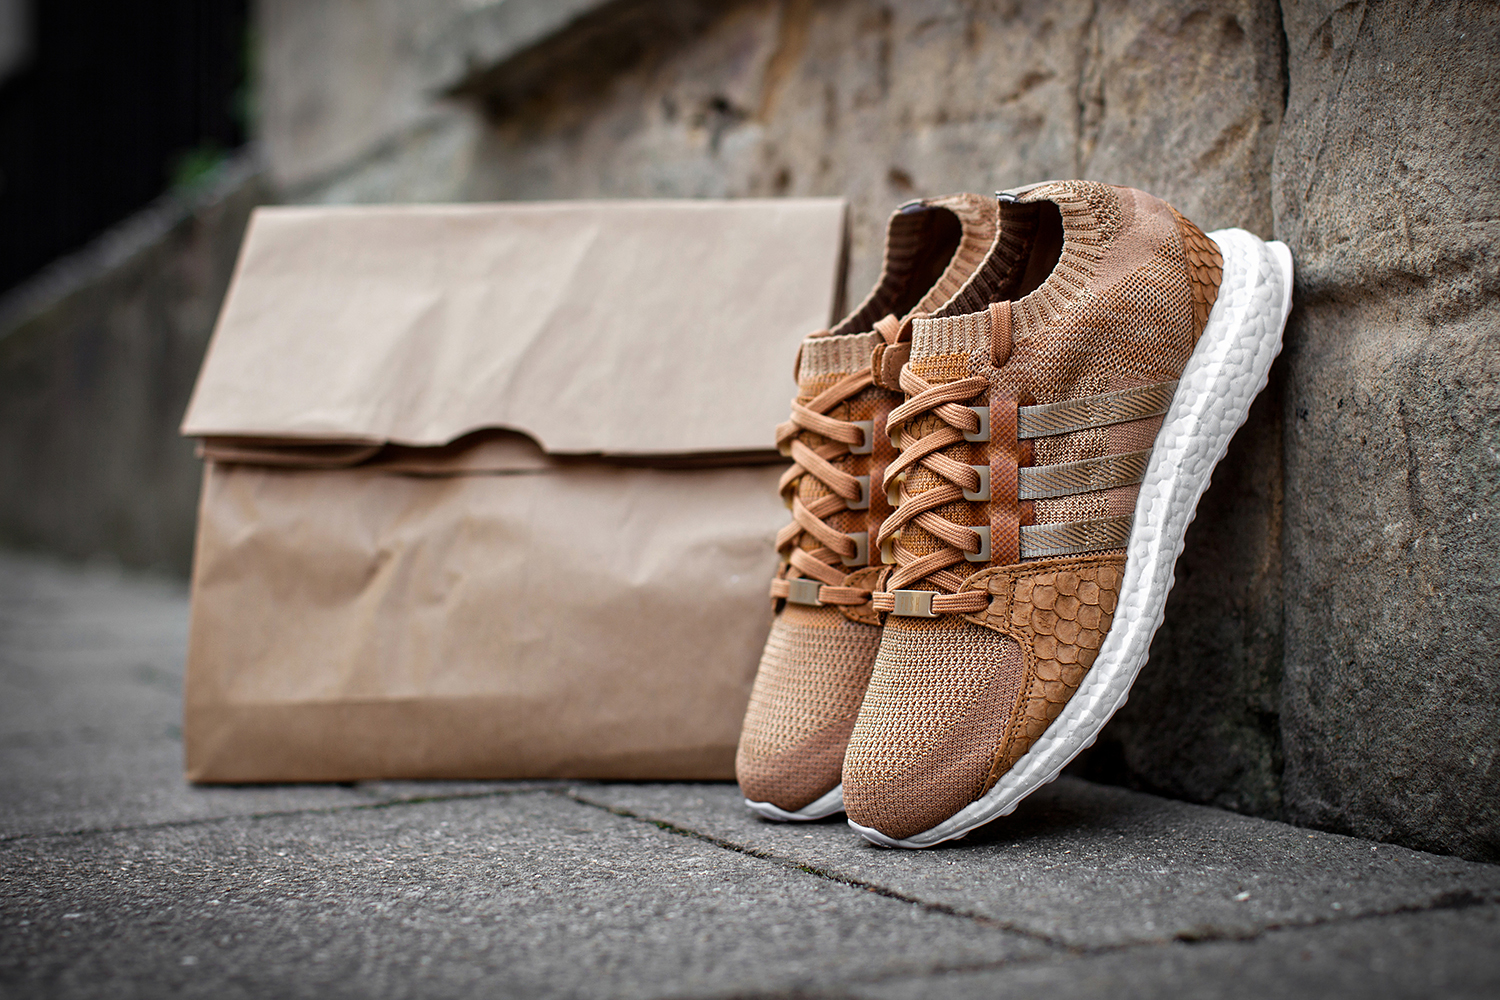 adidas x King Push_by Kev Foster for Philip Browne-1.jpg